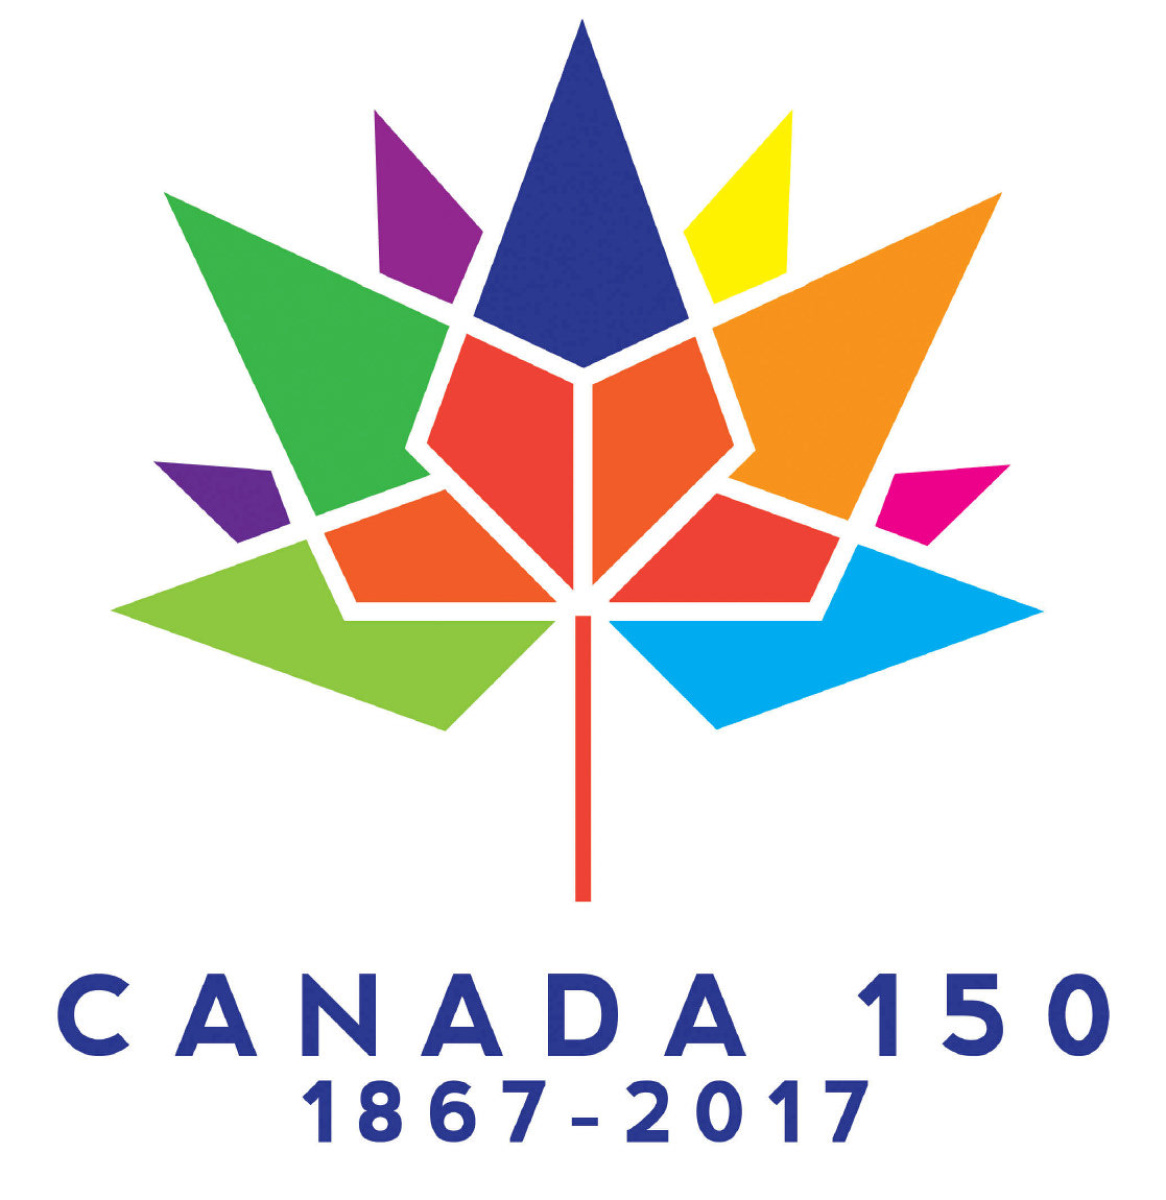 What's the right way to mark Canada 150?